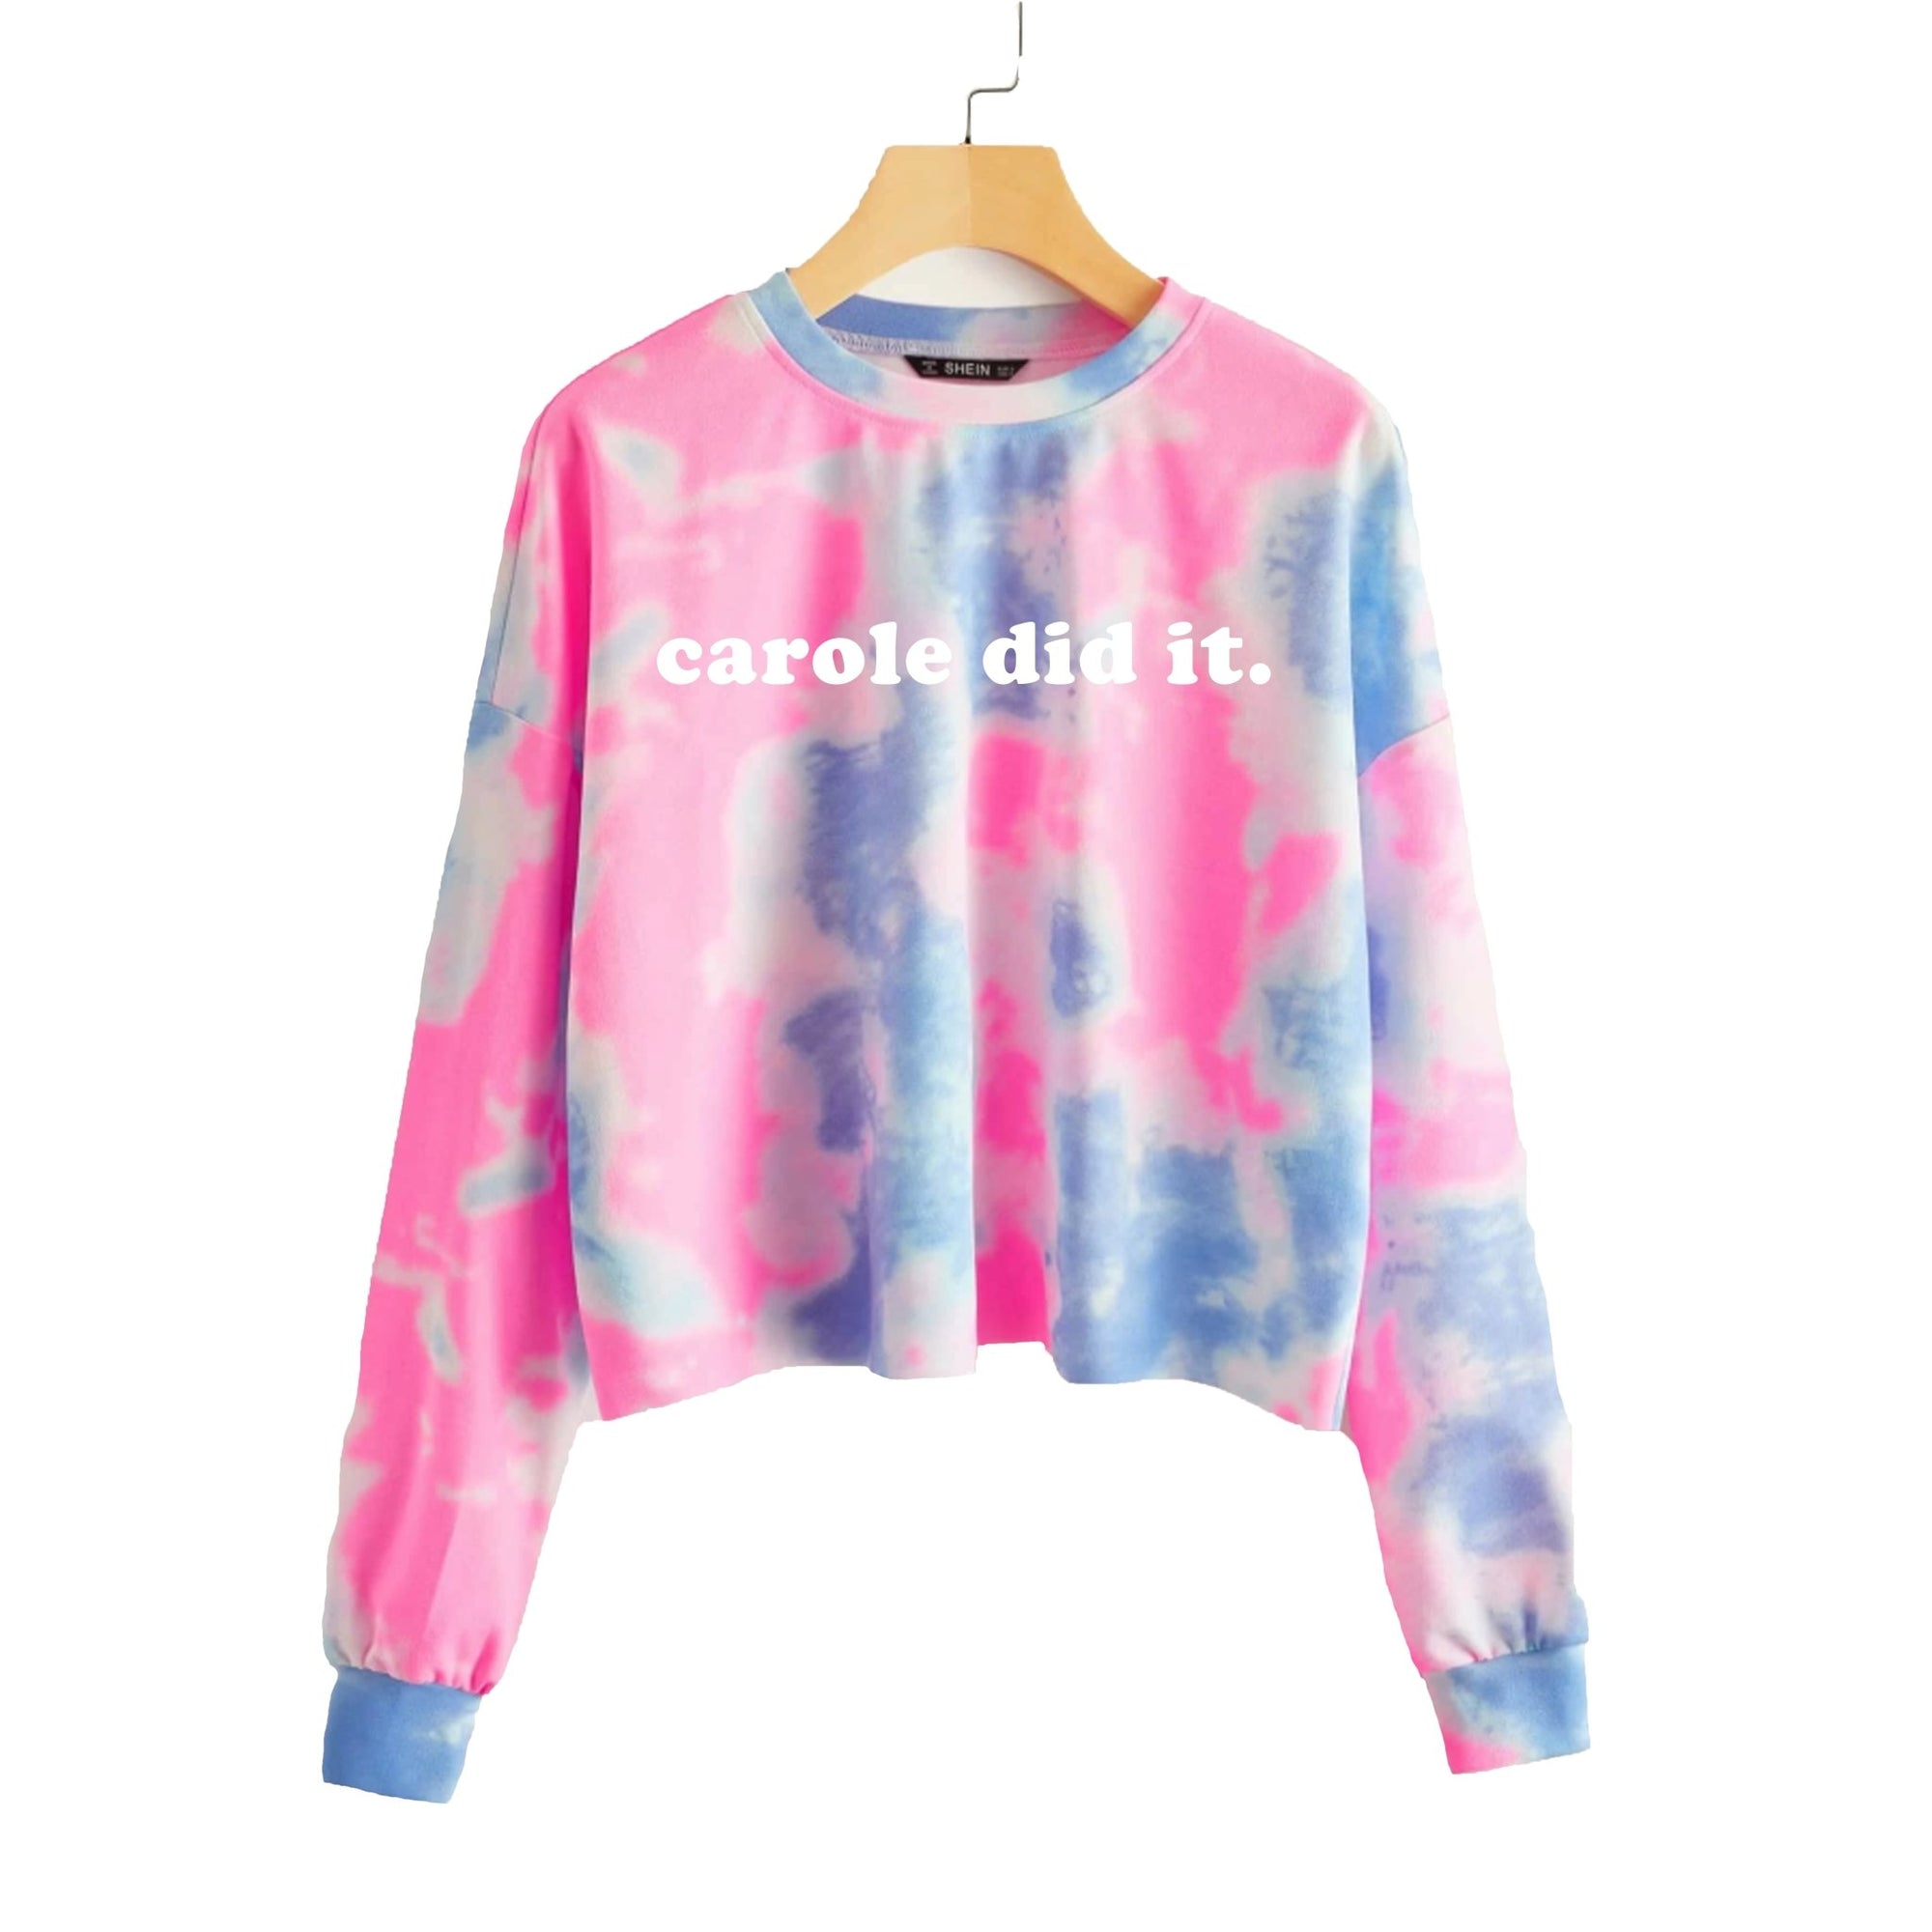 Carole Did It Sweatshirt - Sprinkled With Pink #bachelorette #custom #gifts